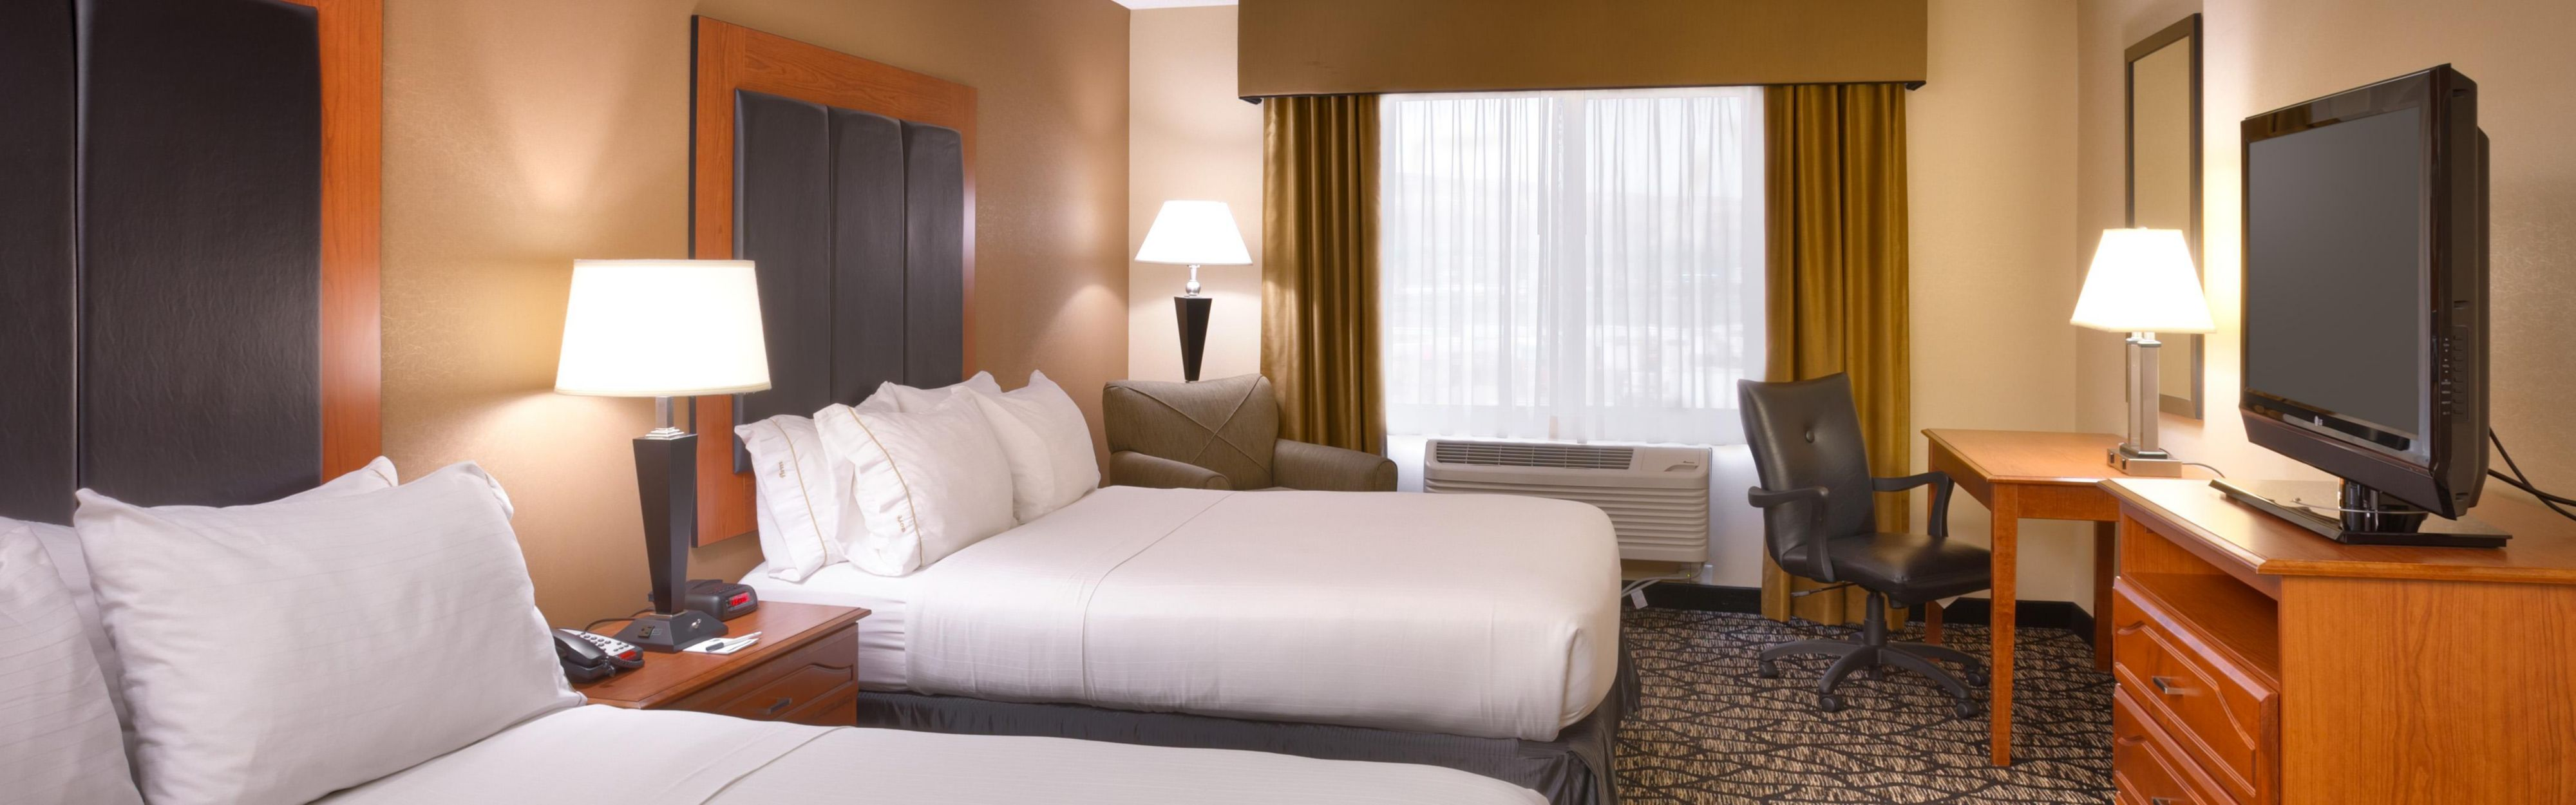 Holiday Inn Express & Suites Grand Junction image 1